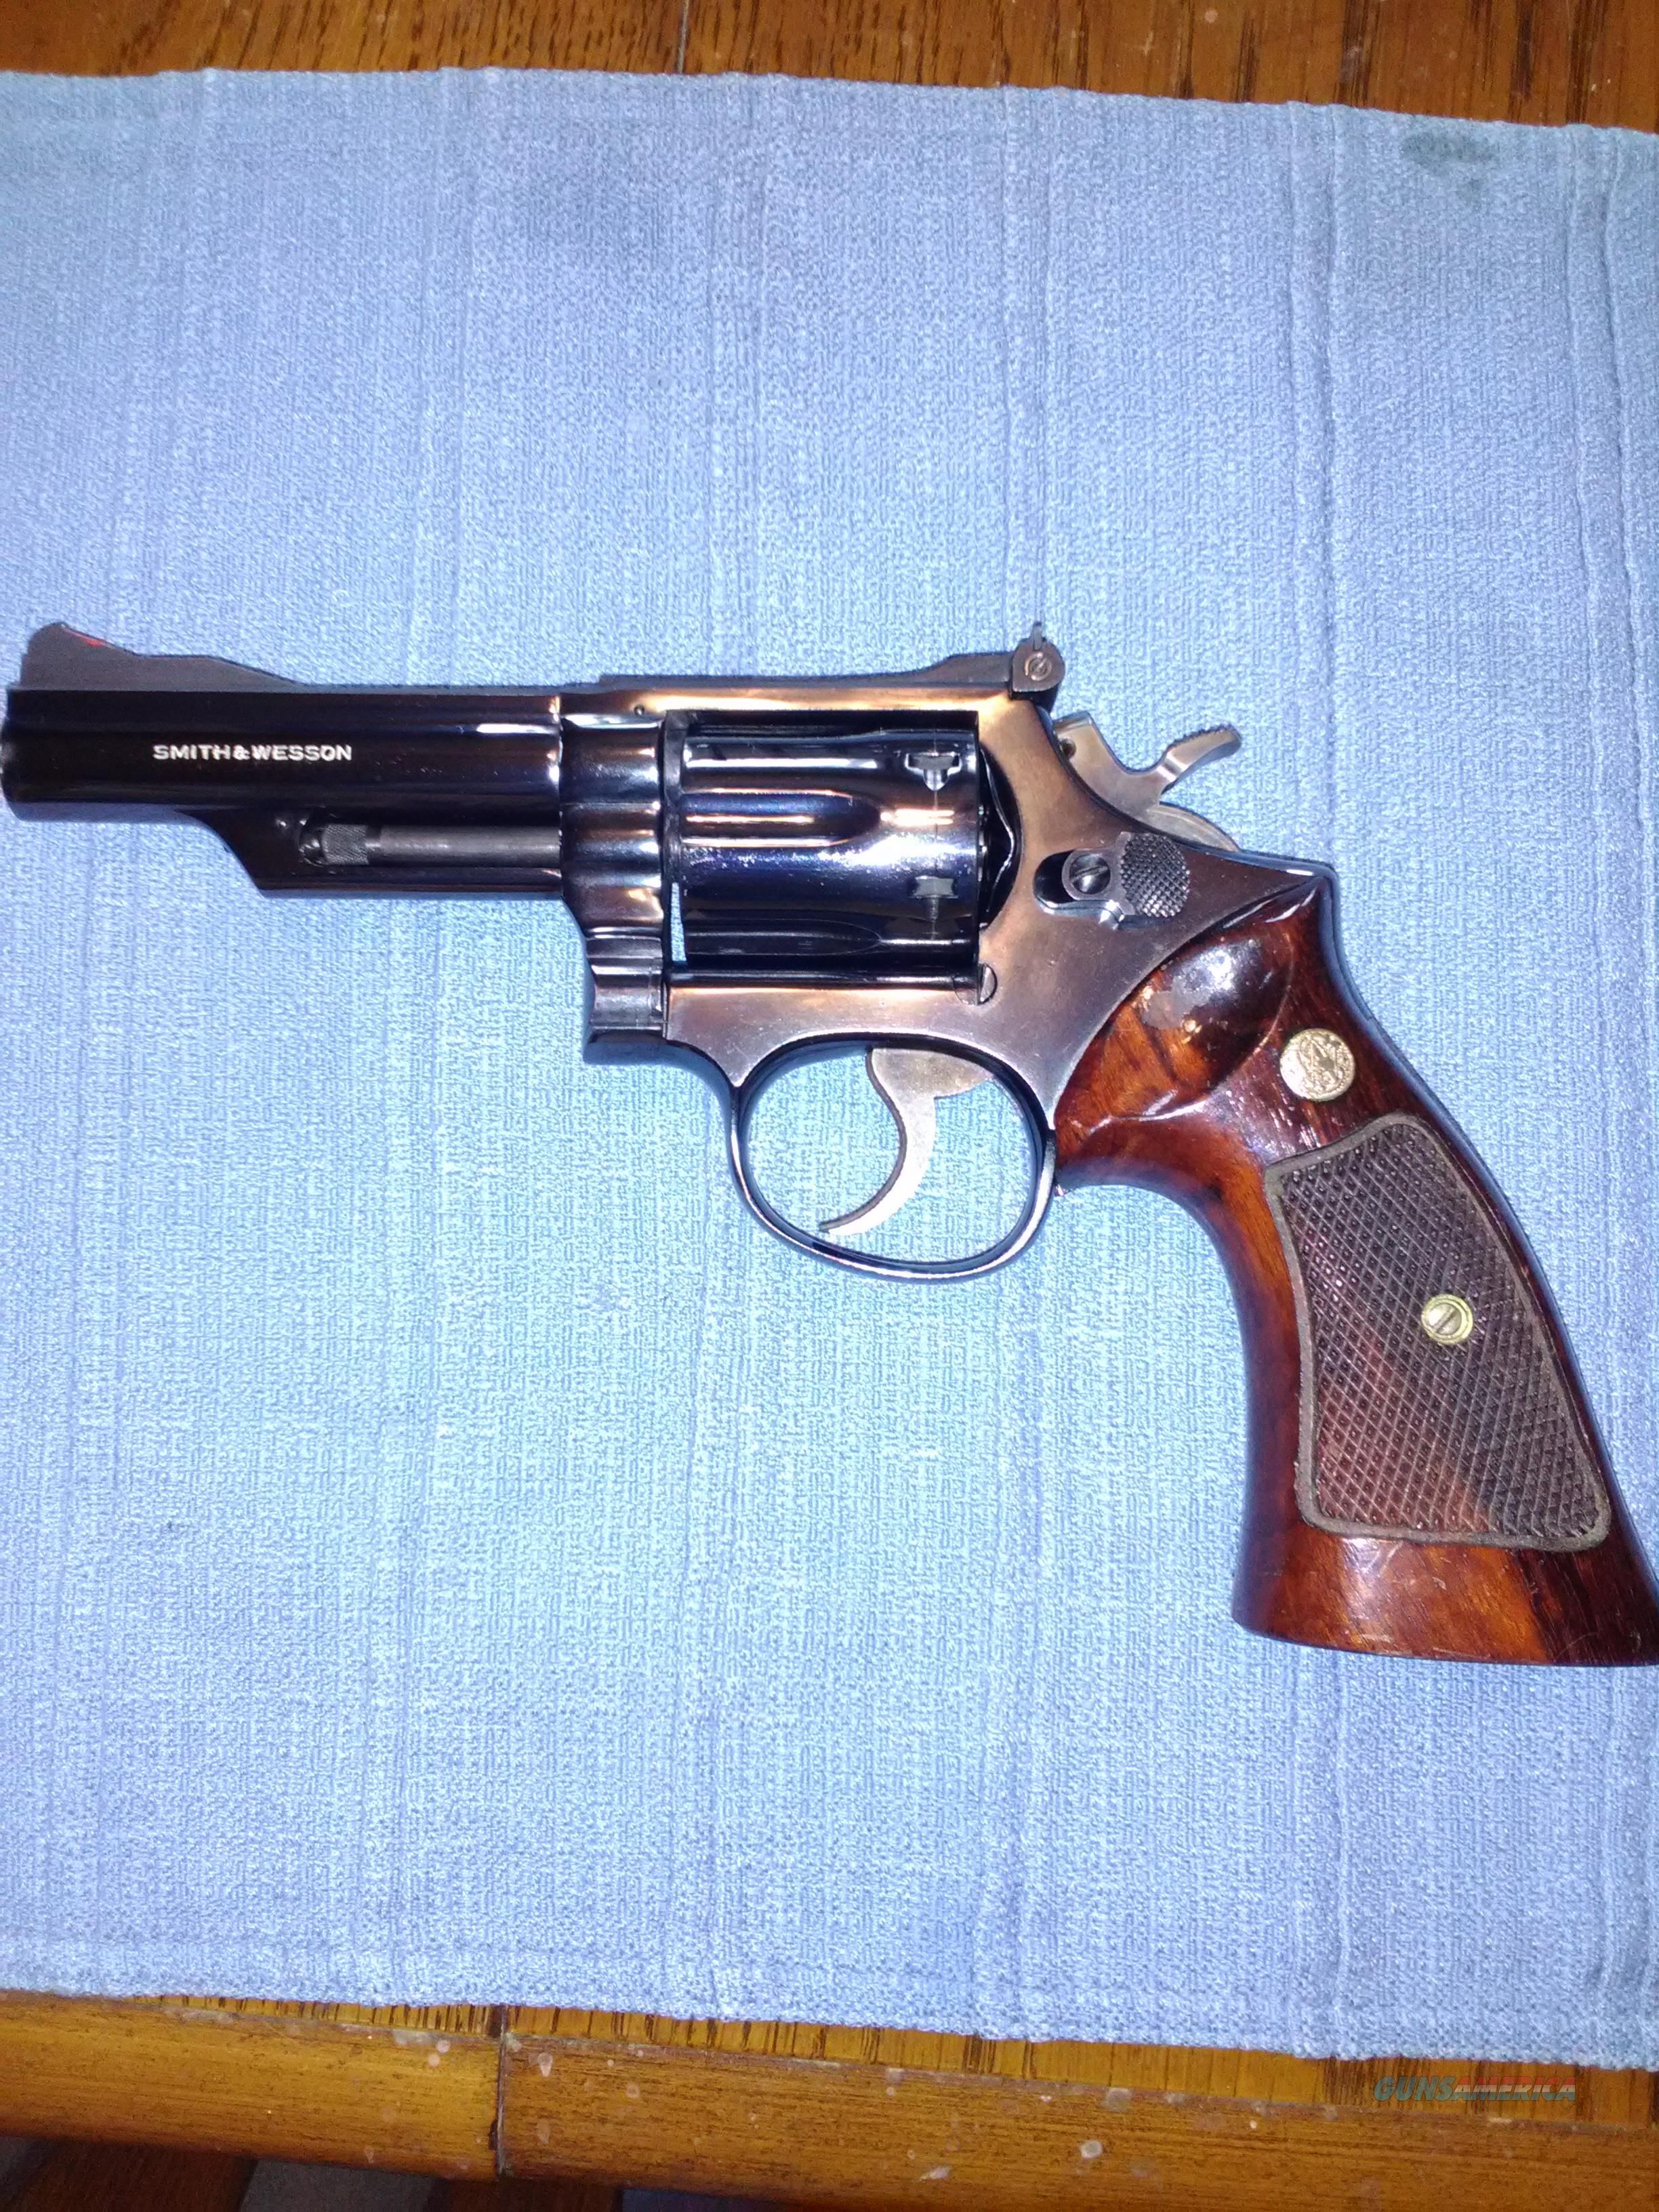 "SMITH & WESSON 19-3, 4"" VERY NICE CONDITION  Guns > Pistols > Smith & Wesson Revolvers > Med. Frame ( K/L )"